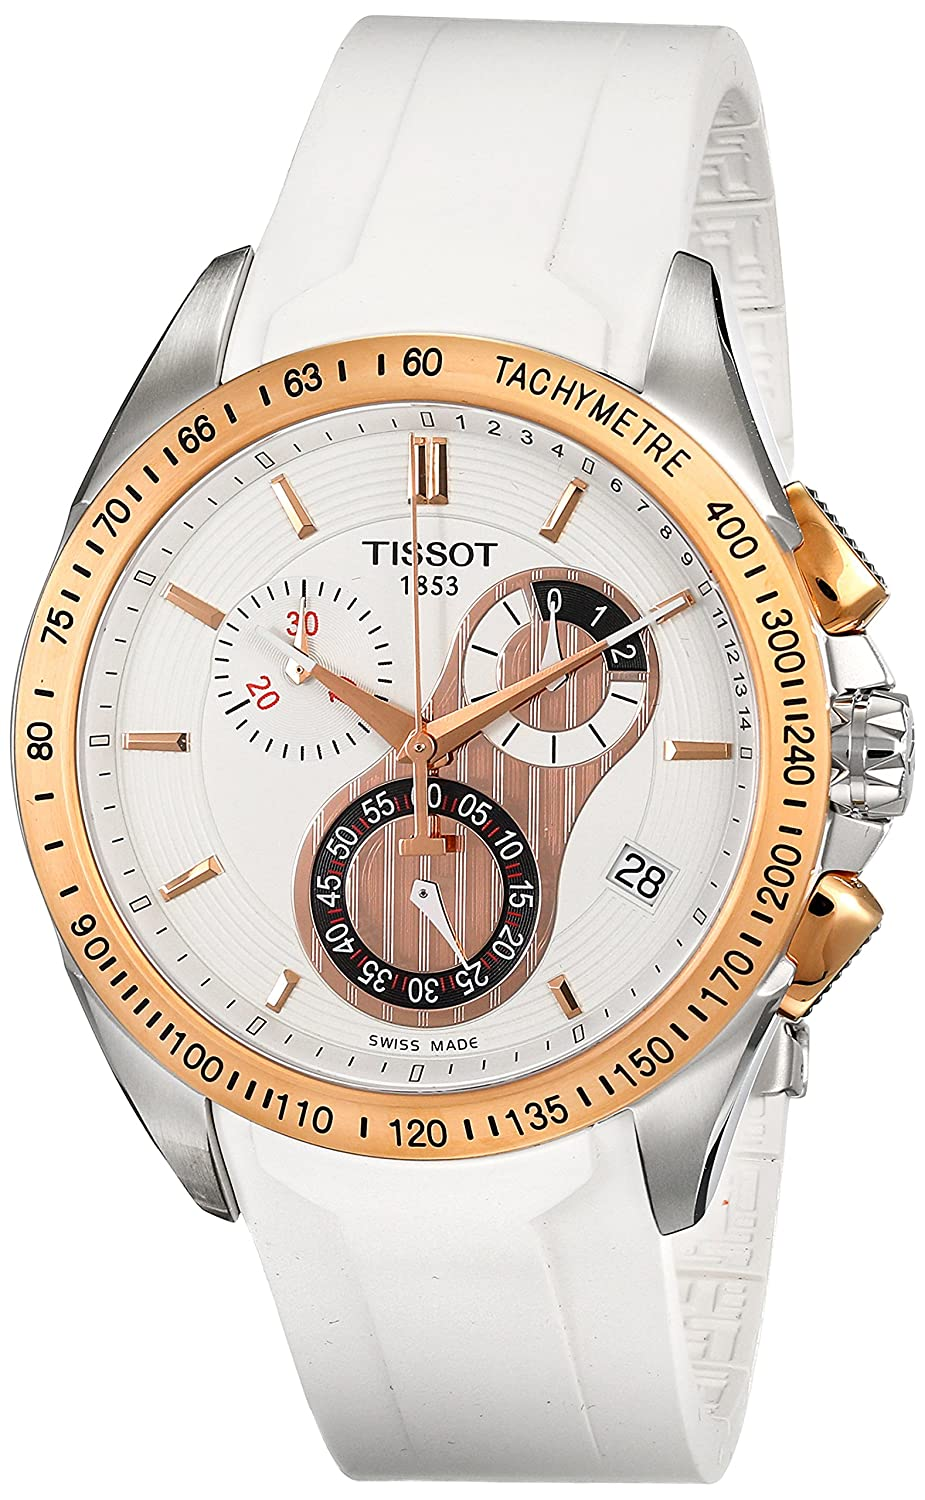 Tissot Men s T0244172701100 T-Sport Racing Chronograph White Dial Watch